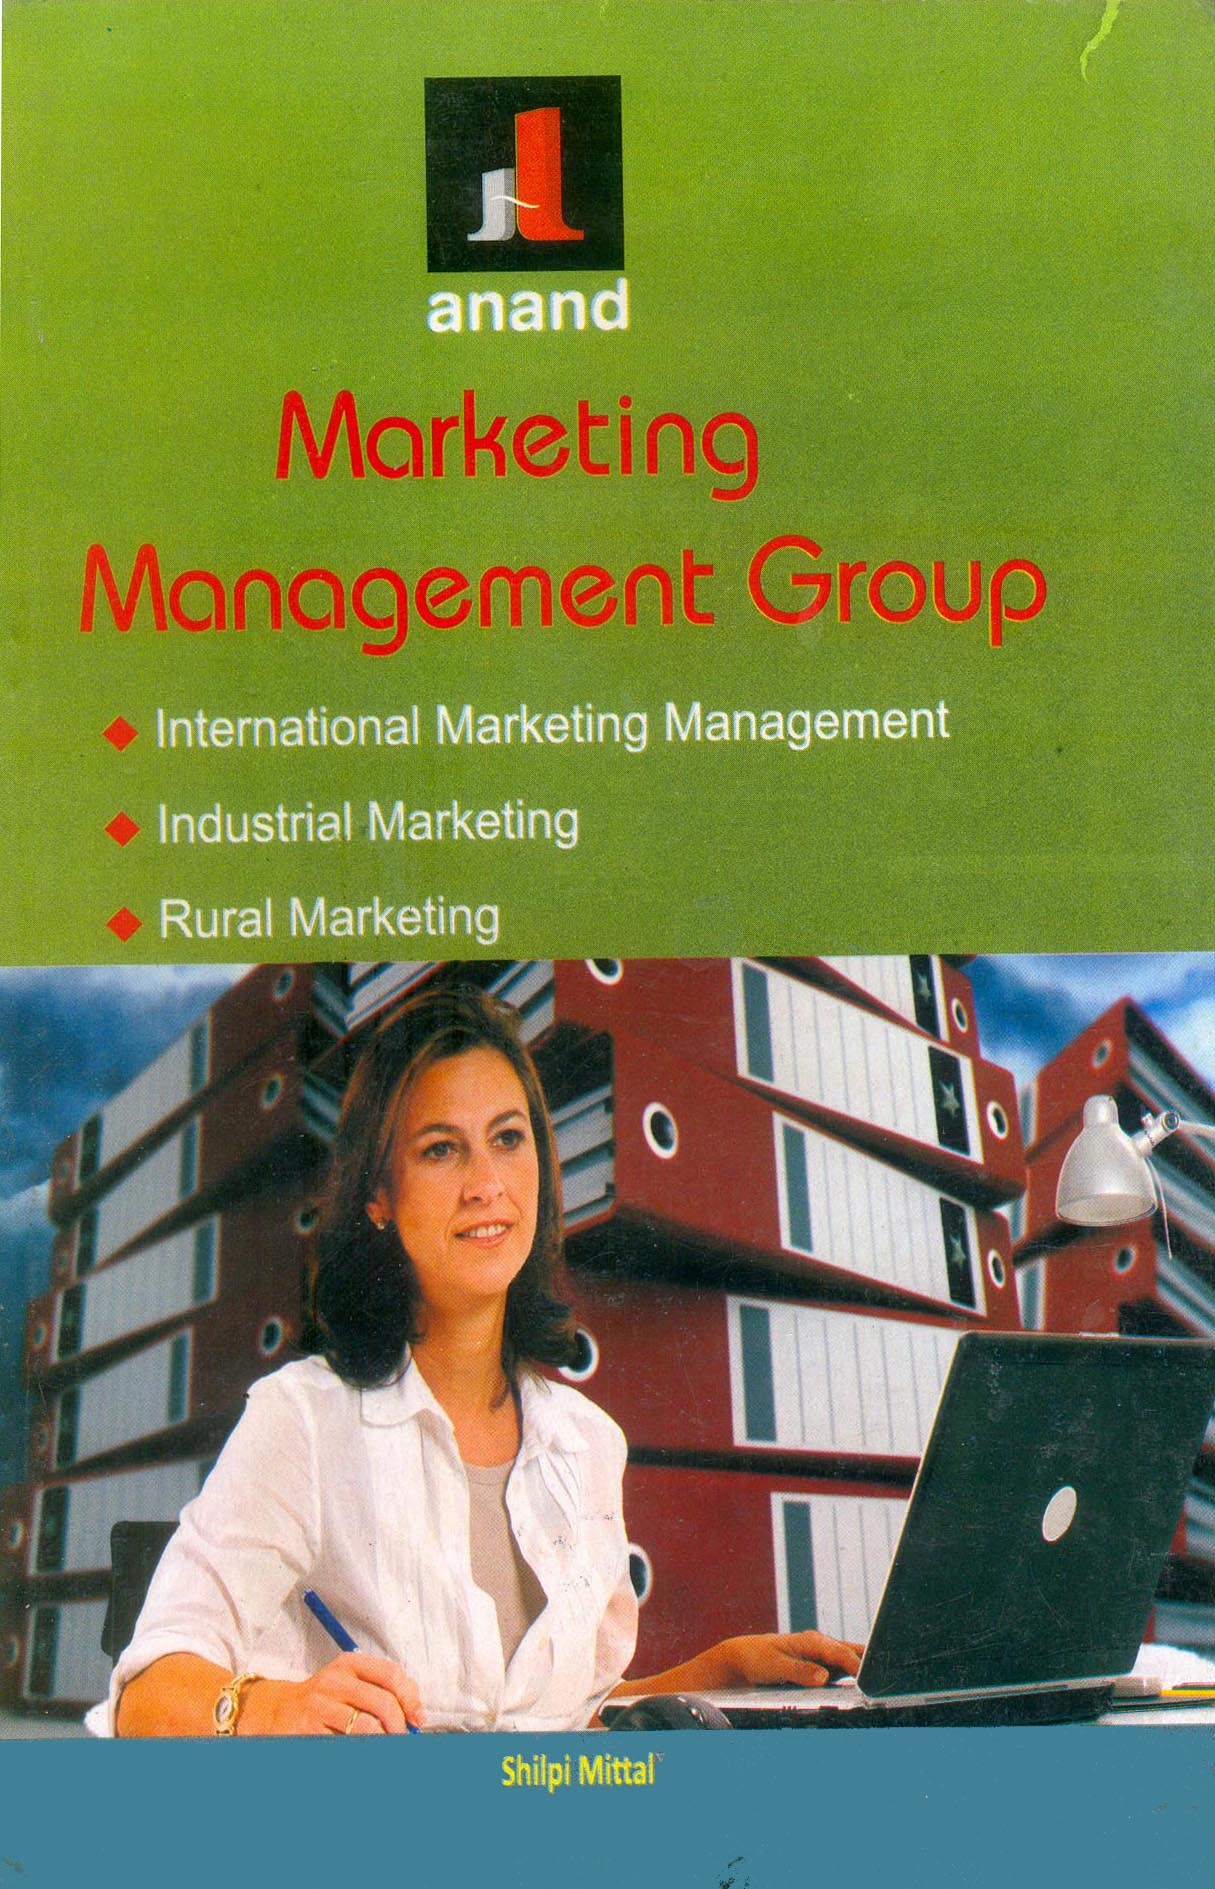 604 Marketing Management Group